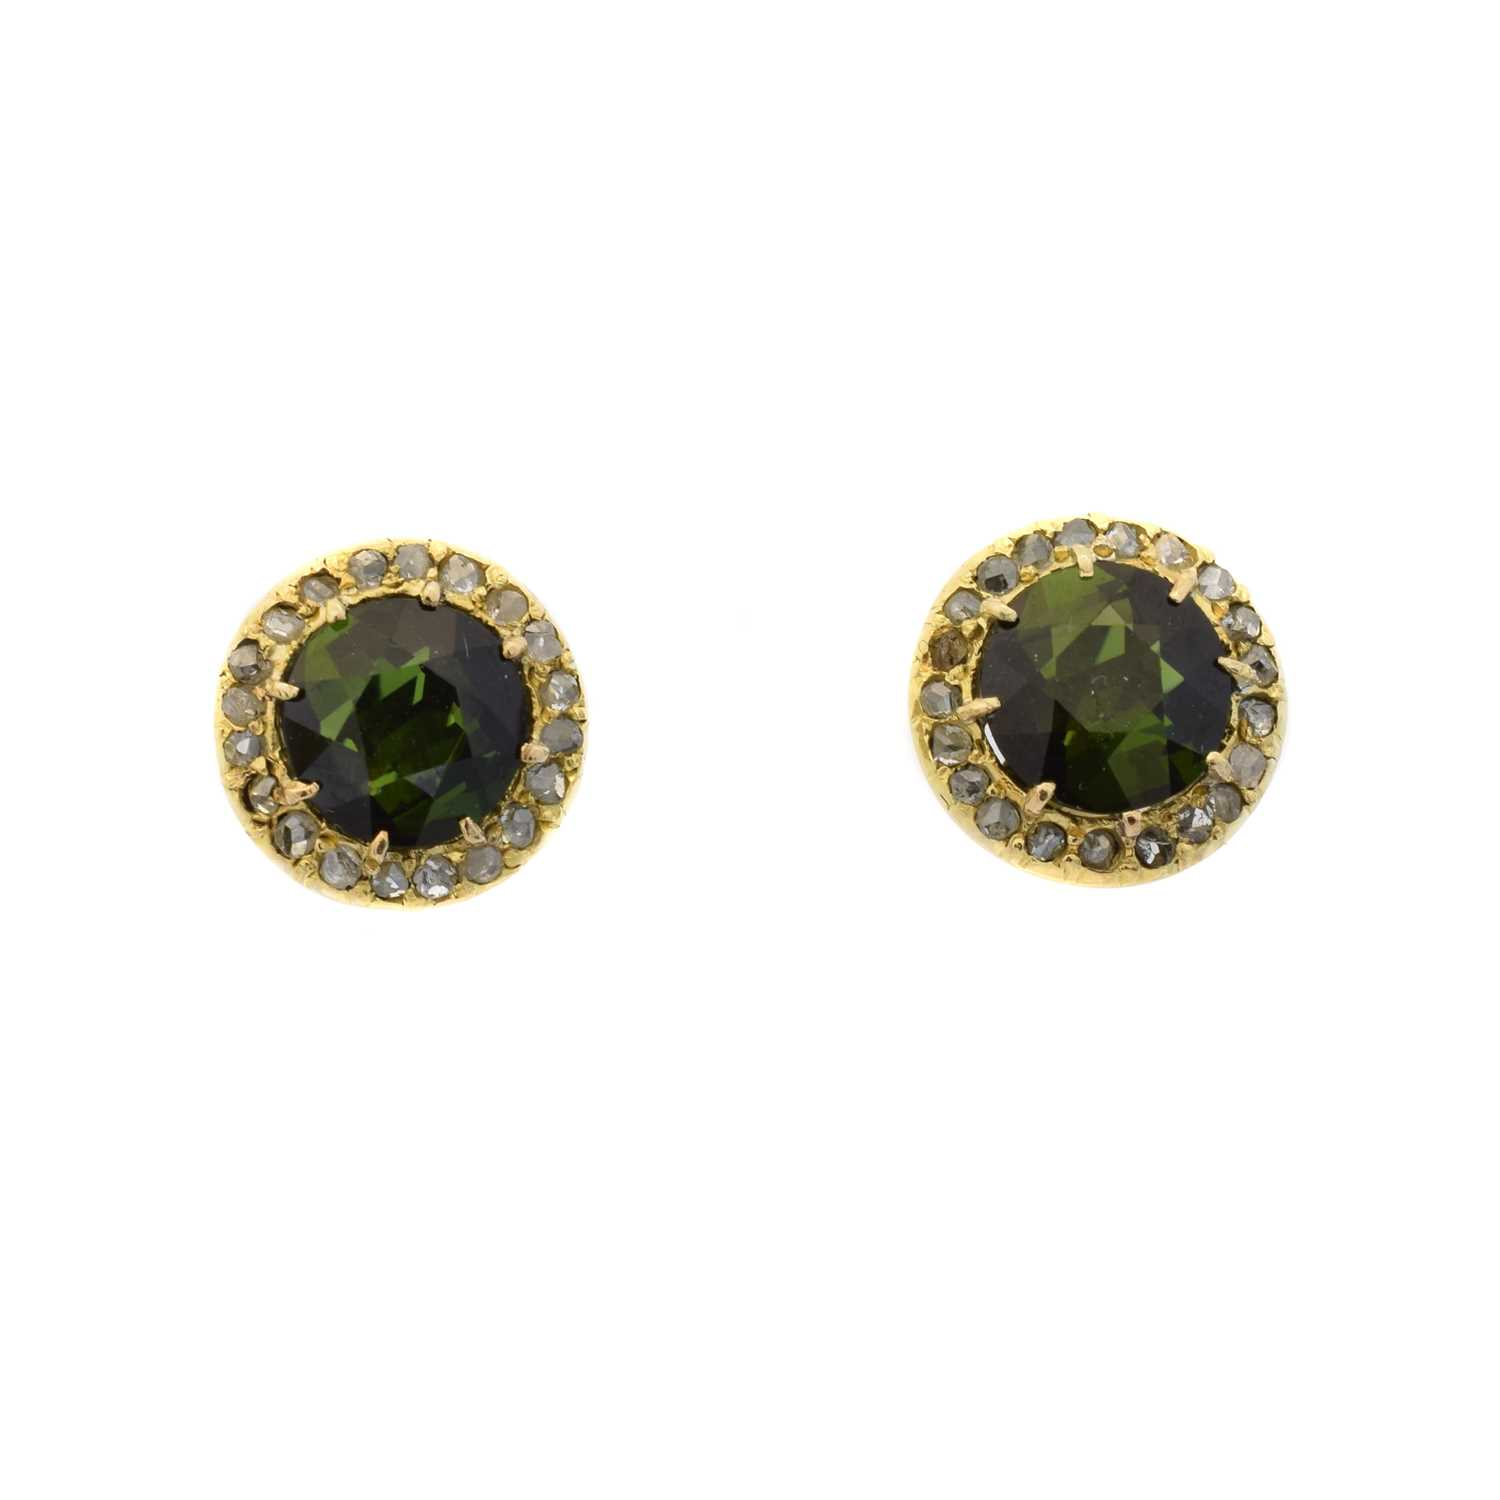 Lot 37 - A pair of green tourmaline and diamond earrings